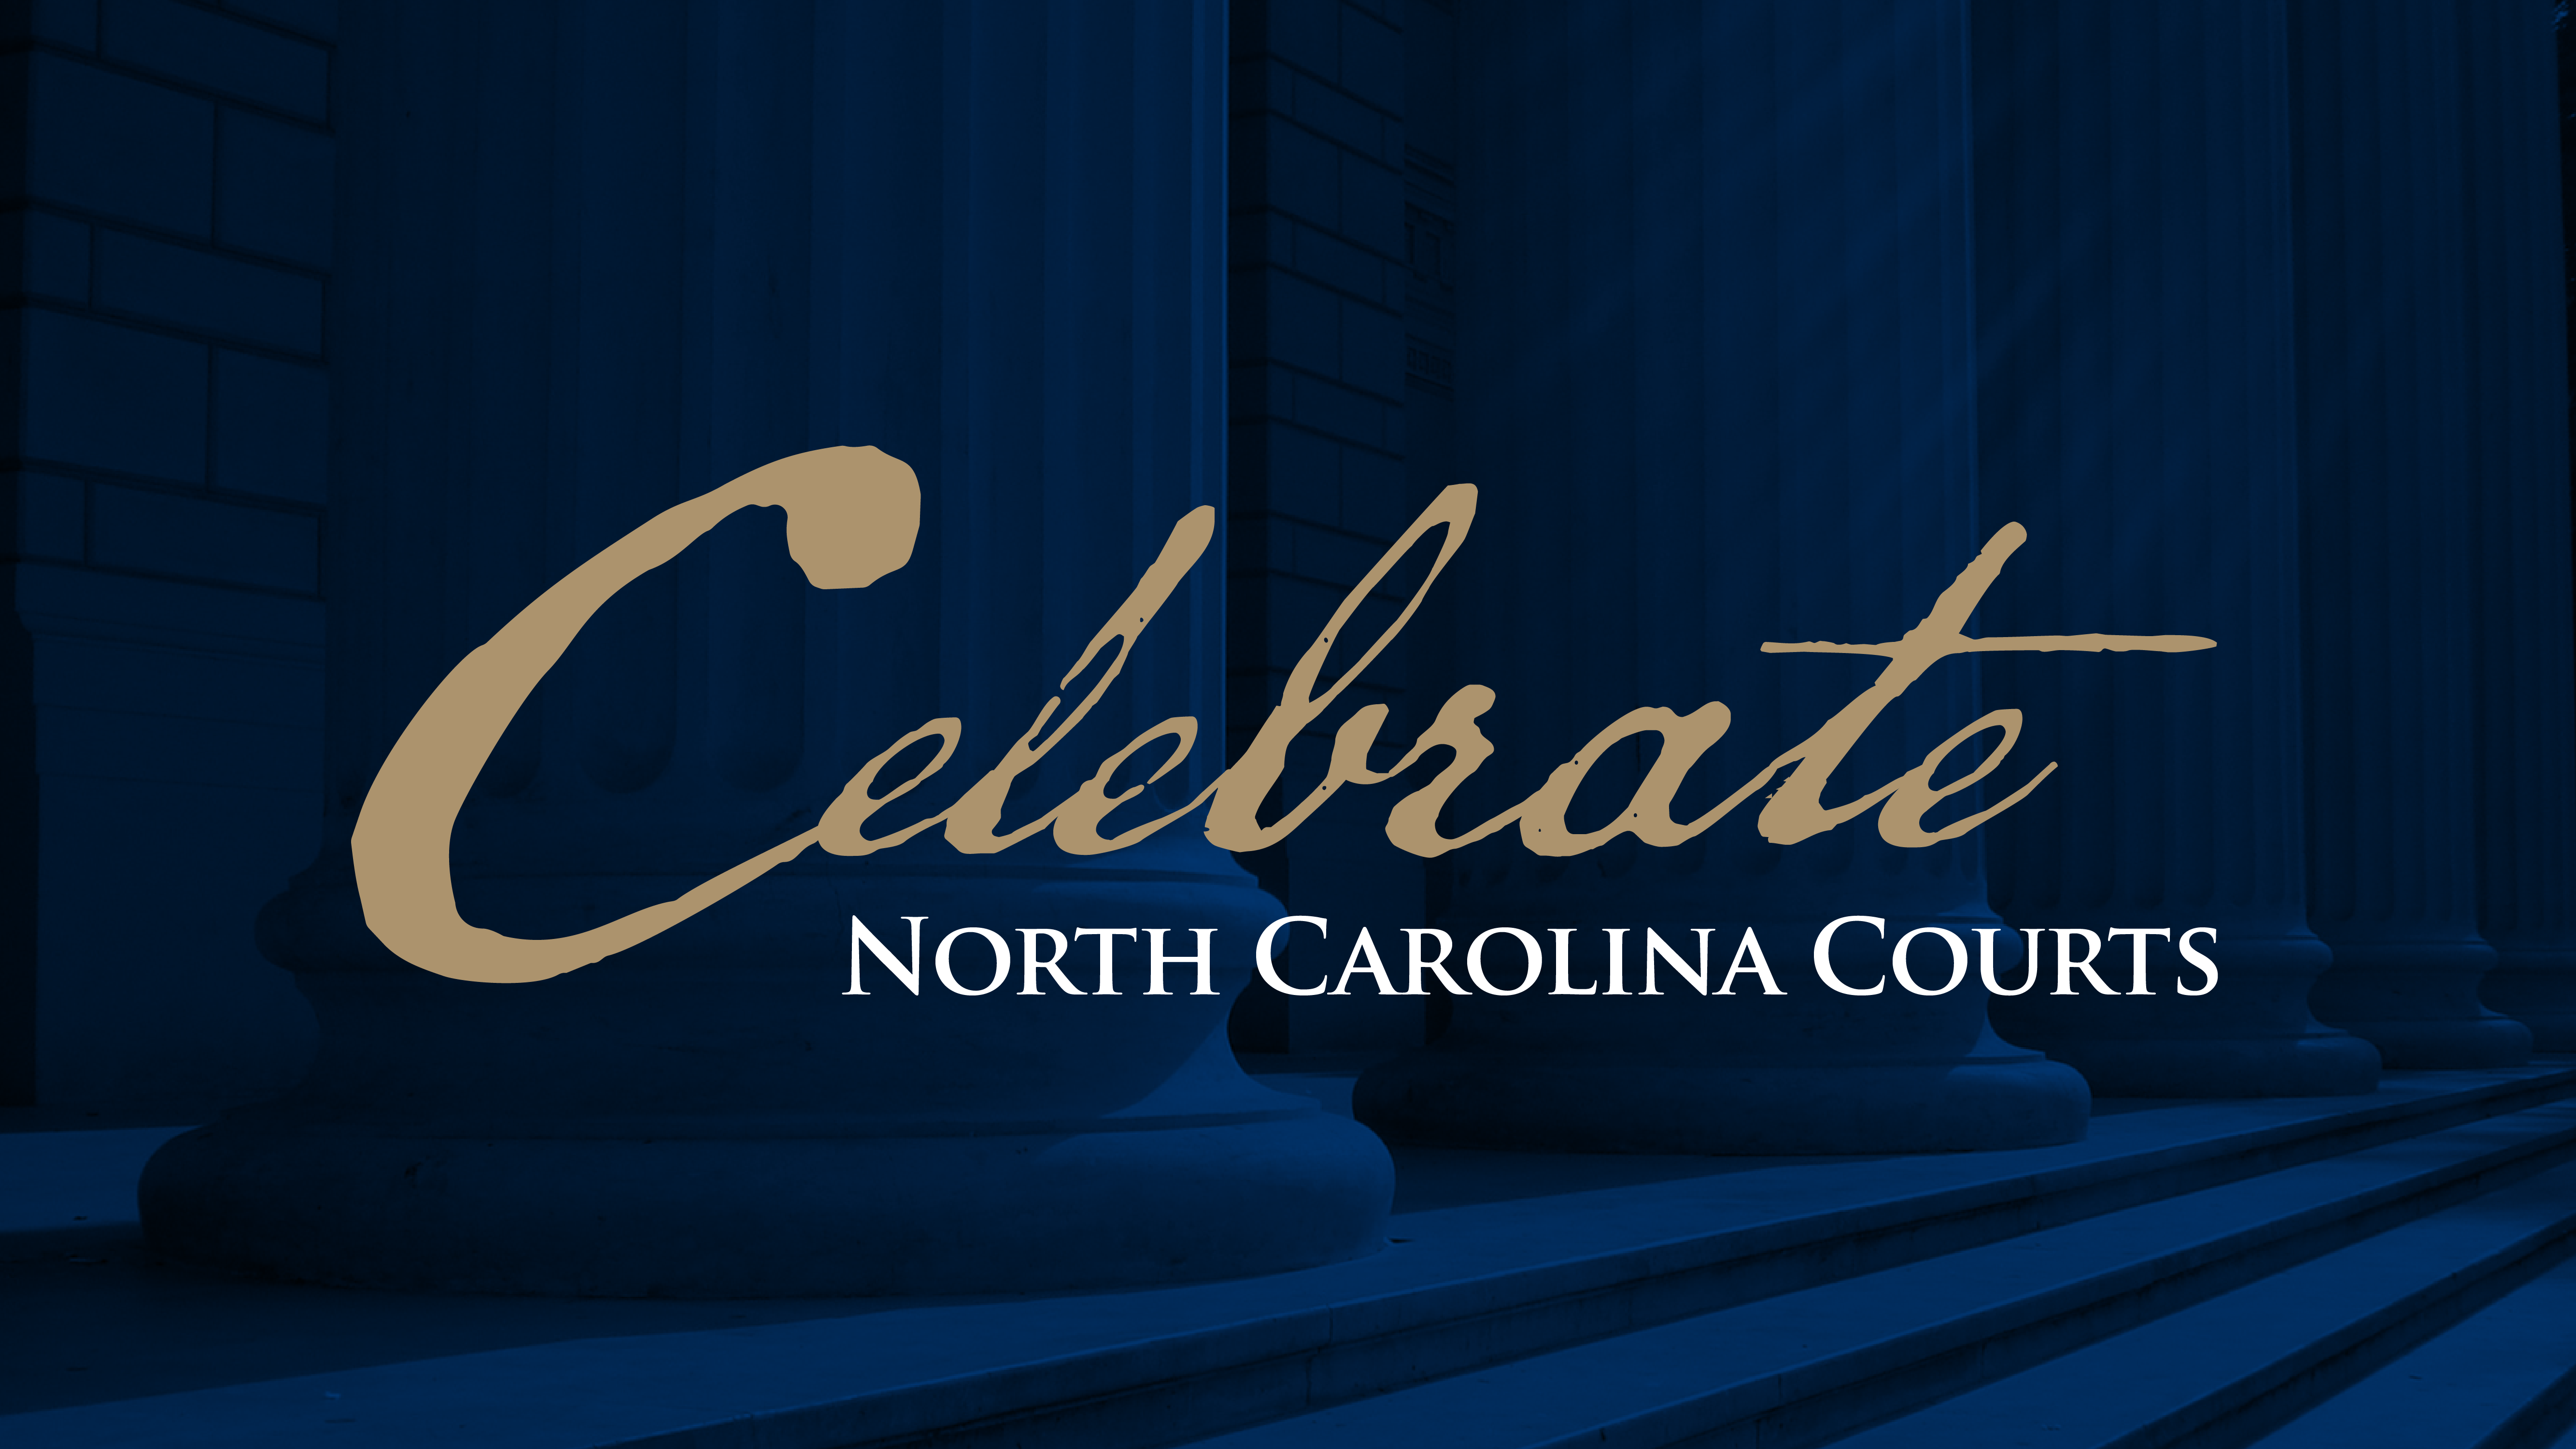 New Hanover County North Carolina Judicial Branch Map Of The United States By Circuits From Court Locator